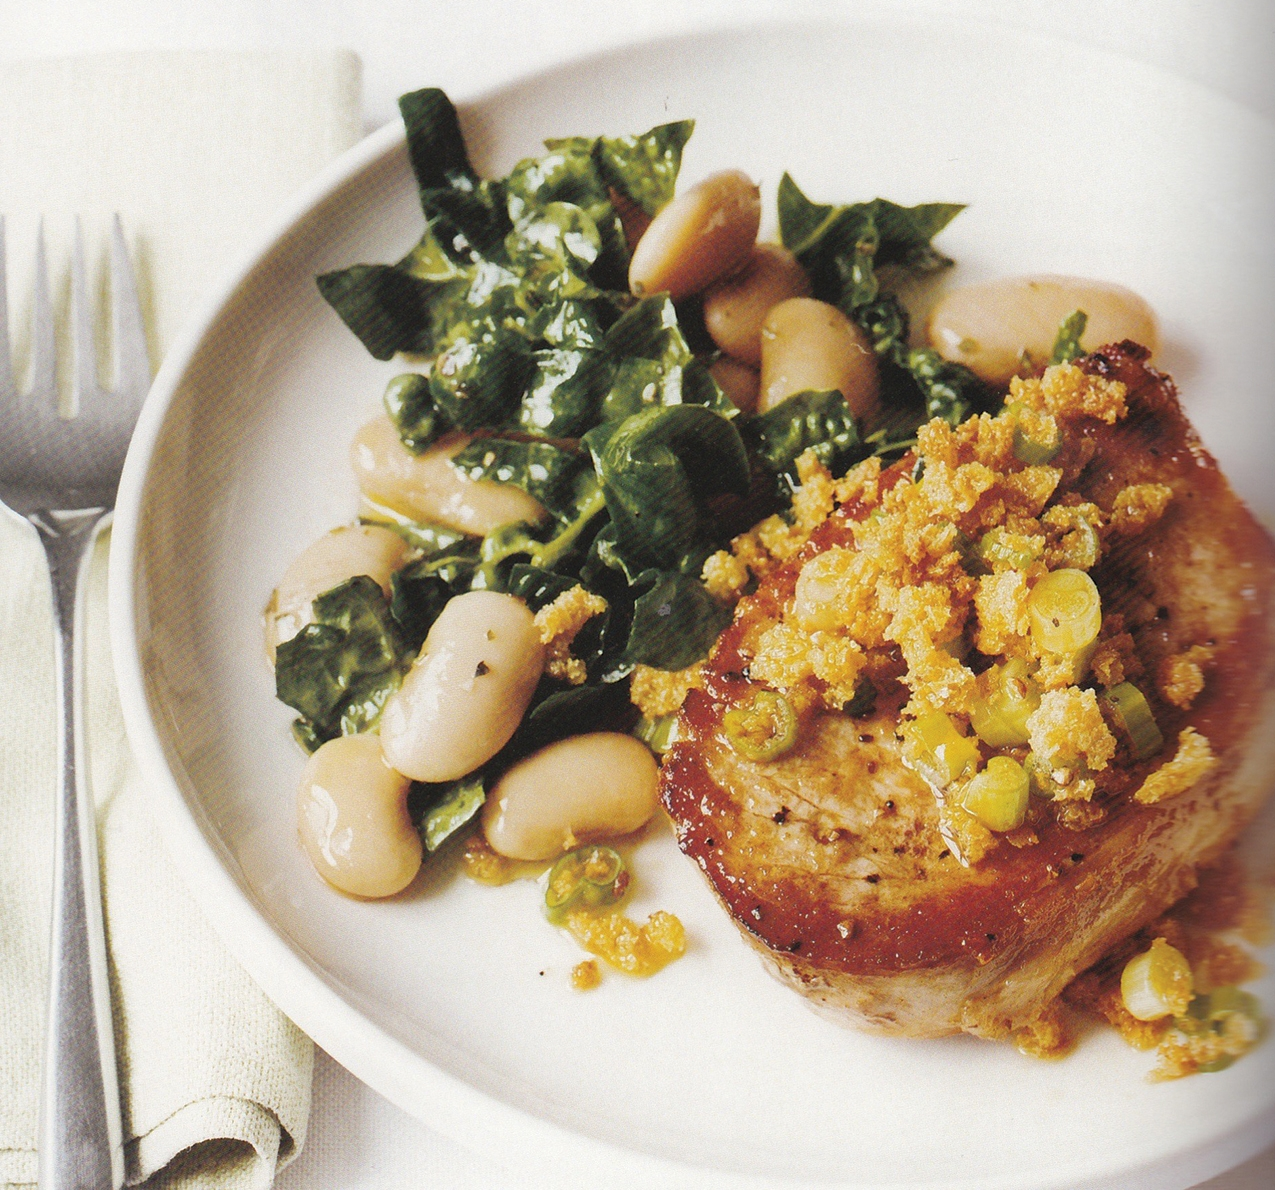 Pork Chops with Butter Bean Salad